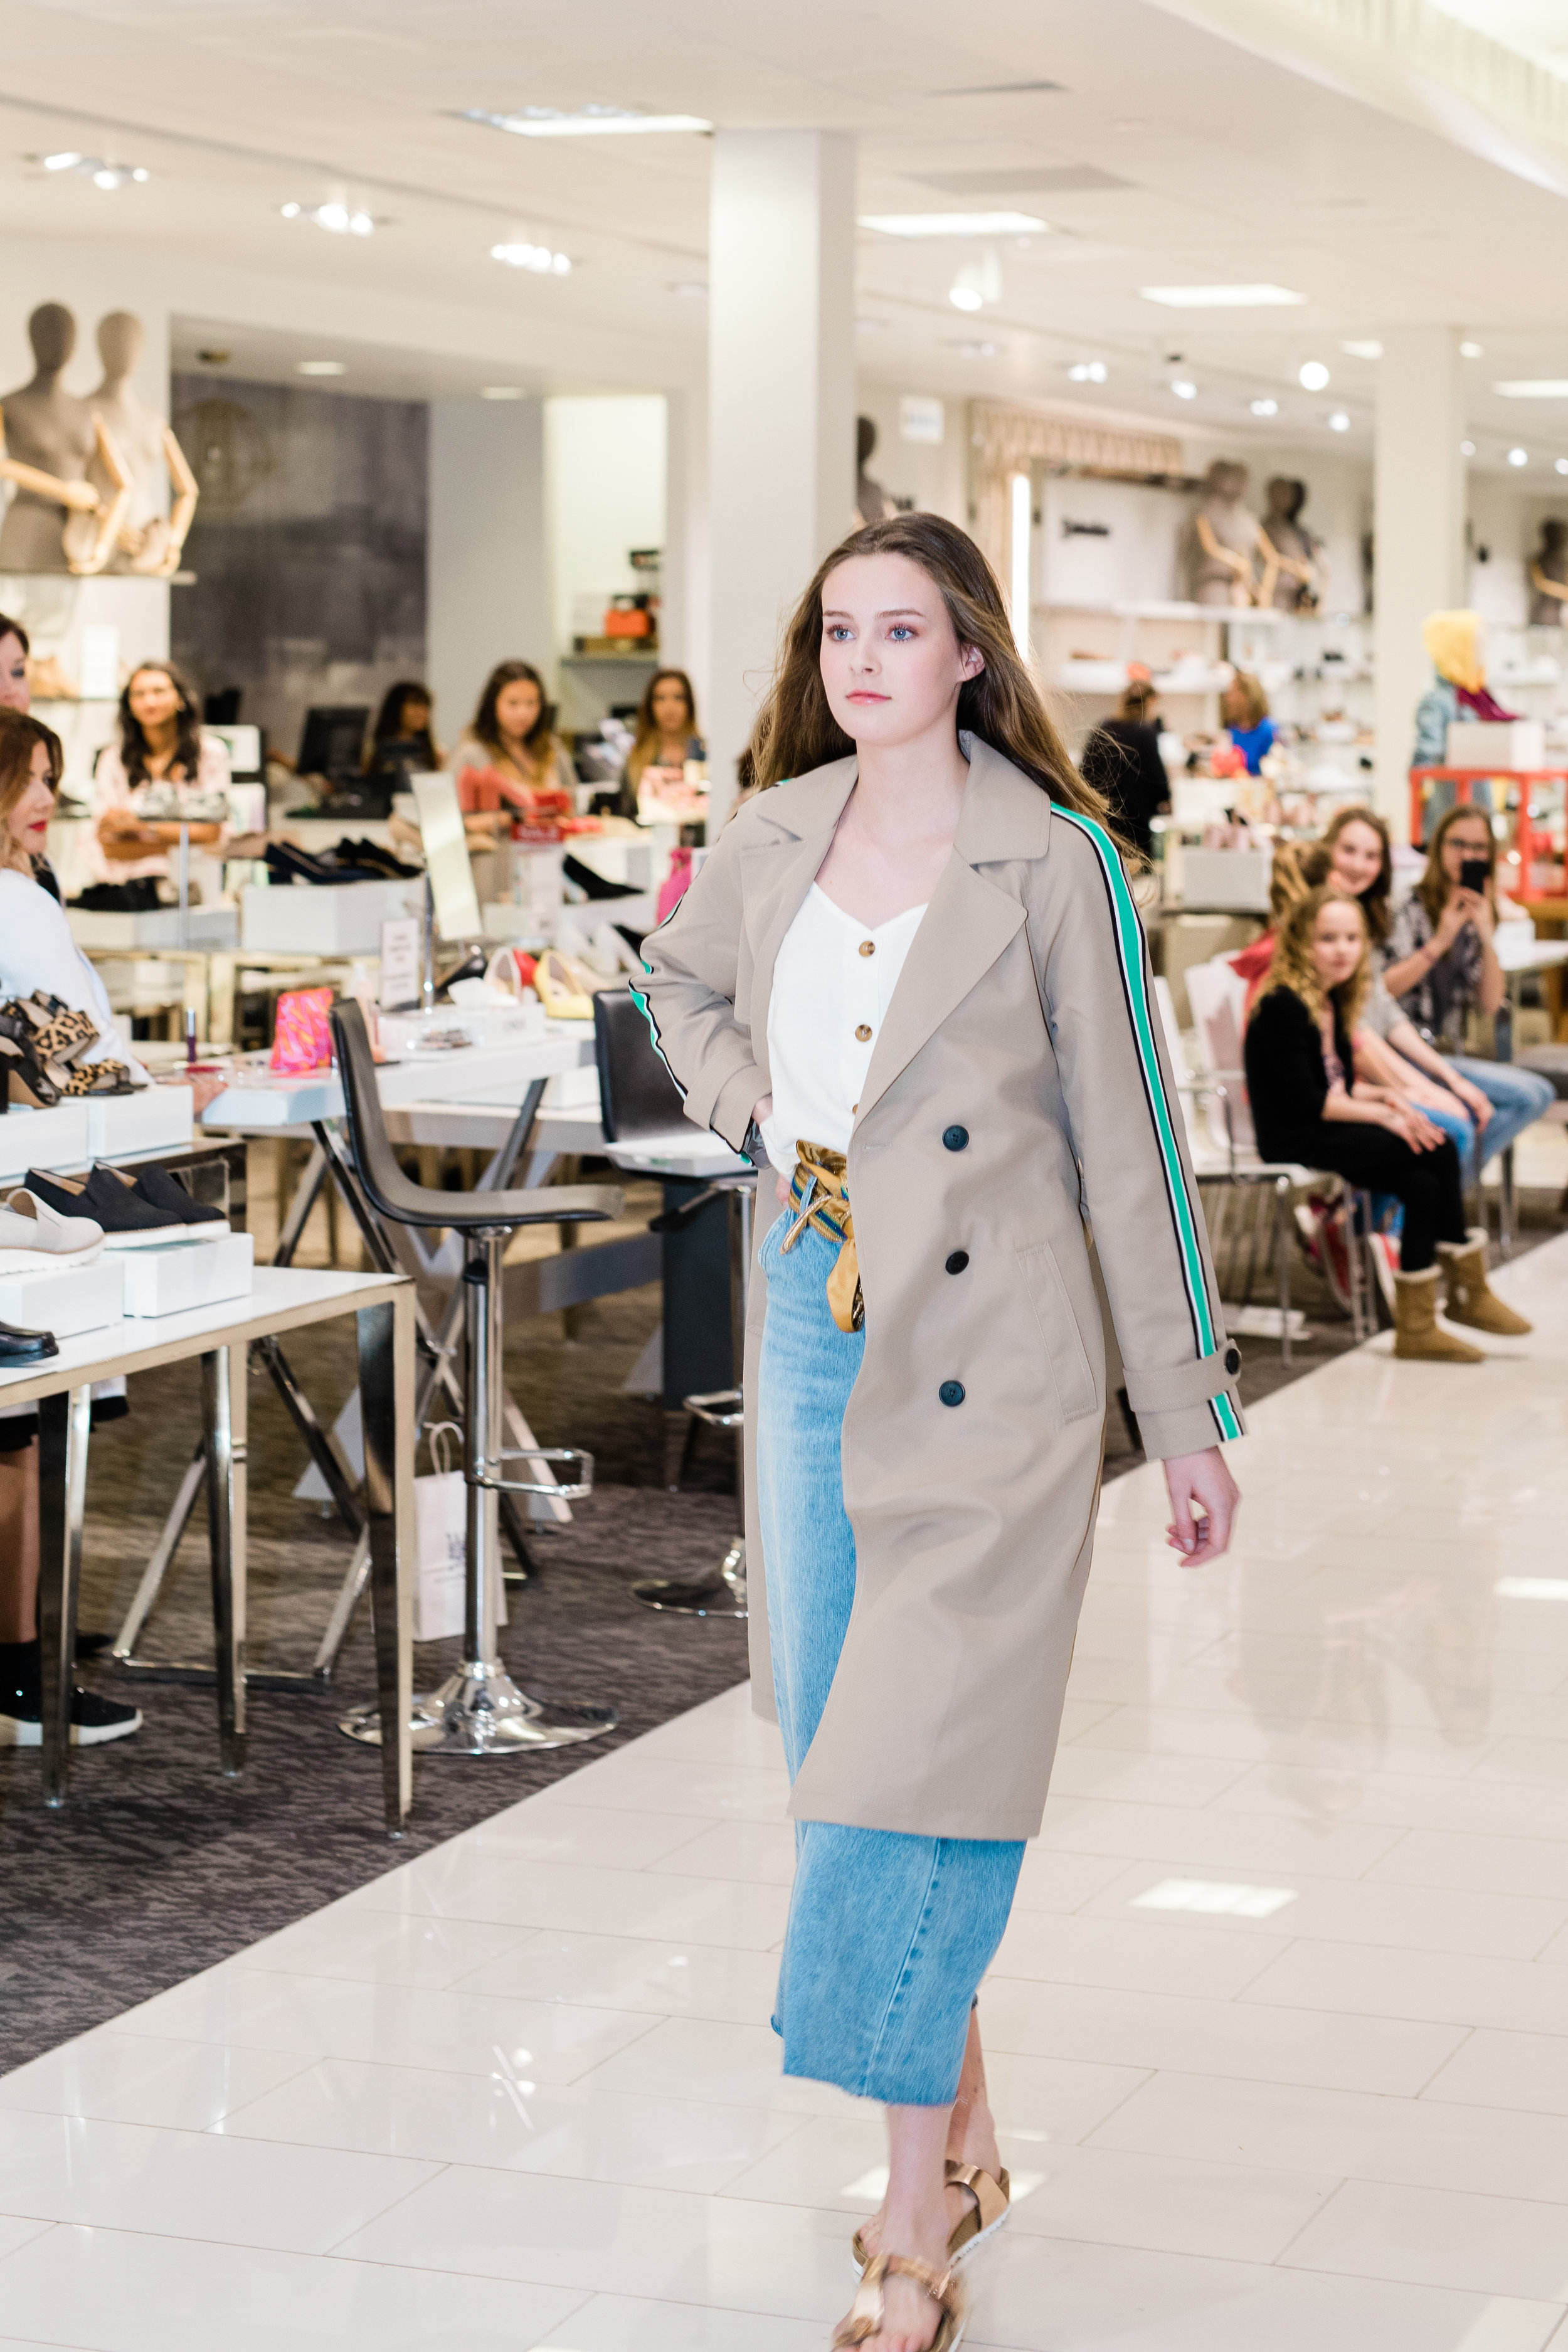 No.19 Trench Dressing - Trench coats are all the rage. Every designer is making one, they come in many colours and can take you from Day to night, Vero Moda paired with Birkenstock's, which are also a great staple in your Spring to Summer closet.